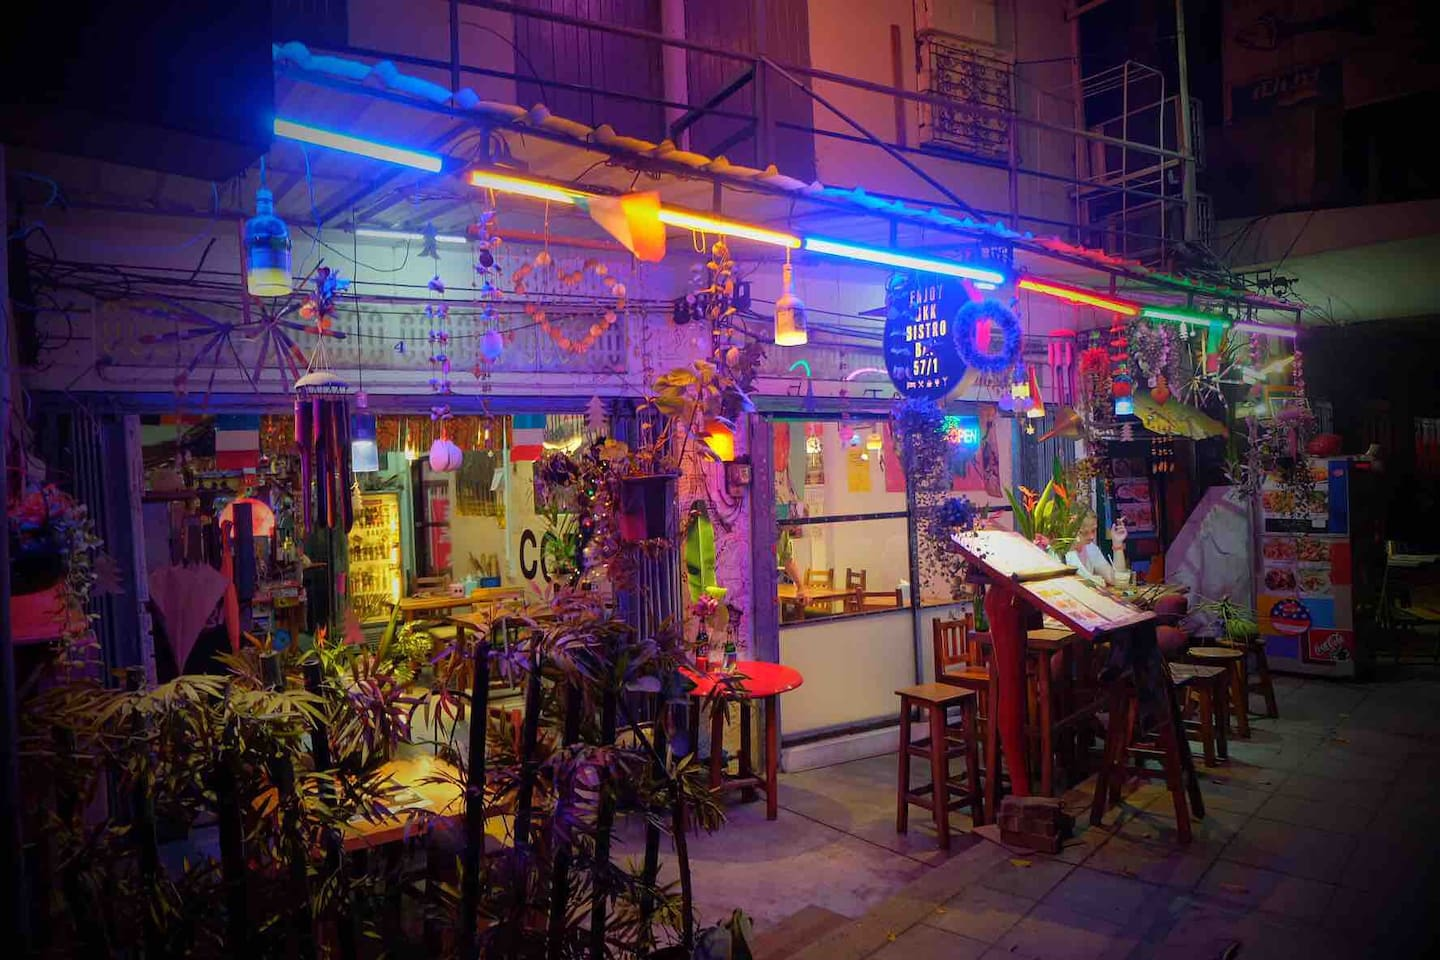 Enjoy Bkk Bistro Bar via tripadvisor.Night life vibes.We are a Thai country kitchen cooking up N.E. Thai/Lao fusion cuisine.Each dish is made to order vegan & or vegetarian.Spicy or not let us know.Work space for you to hang out & enjoy.150+ beers.